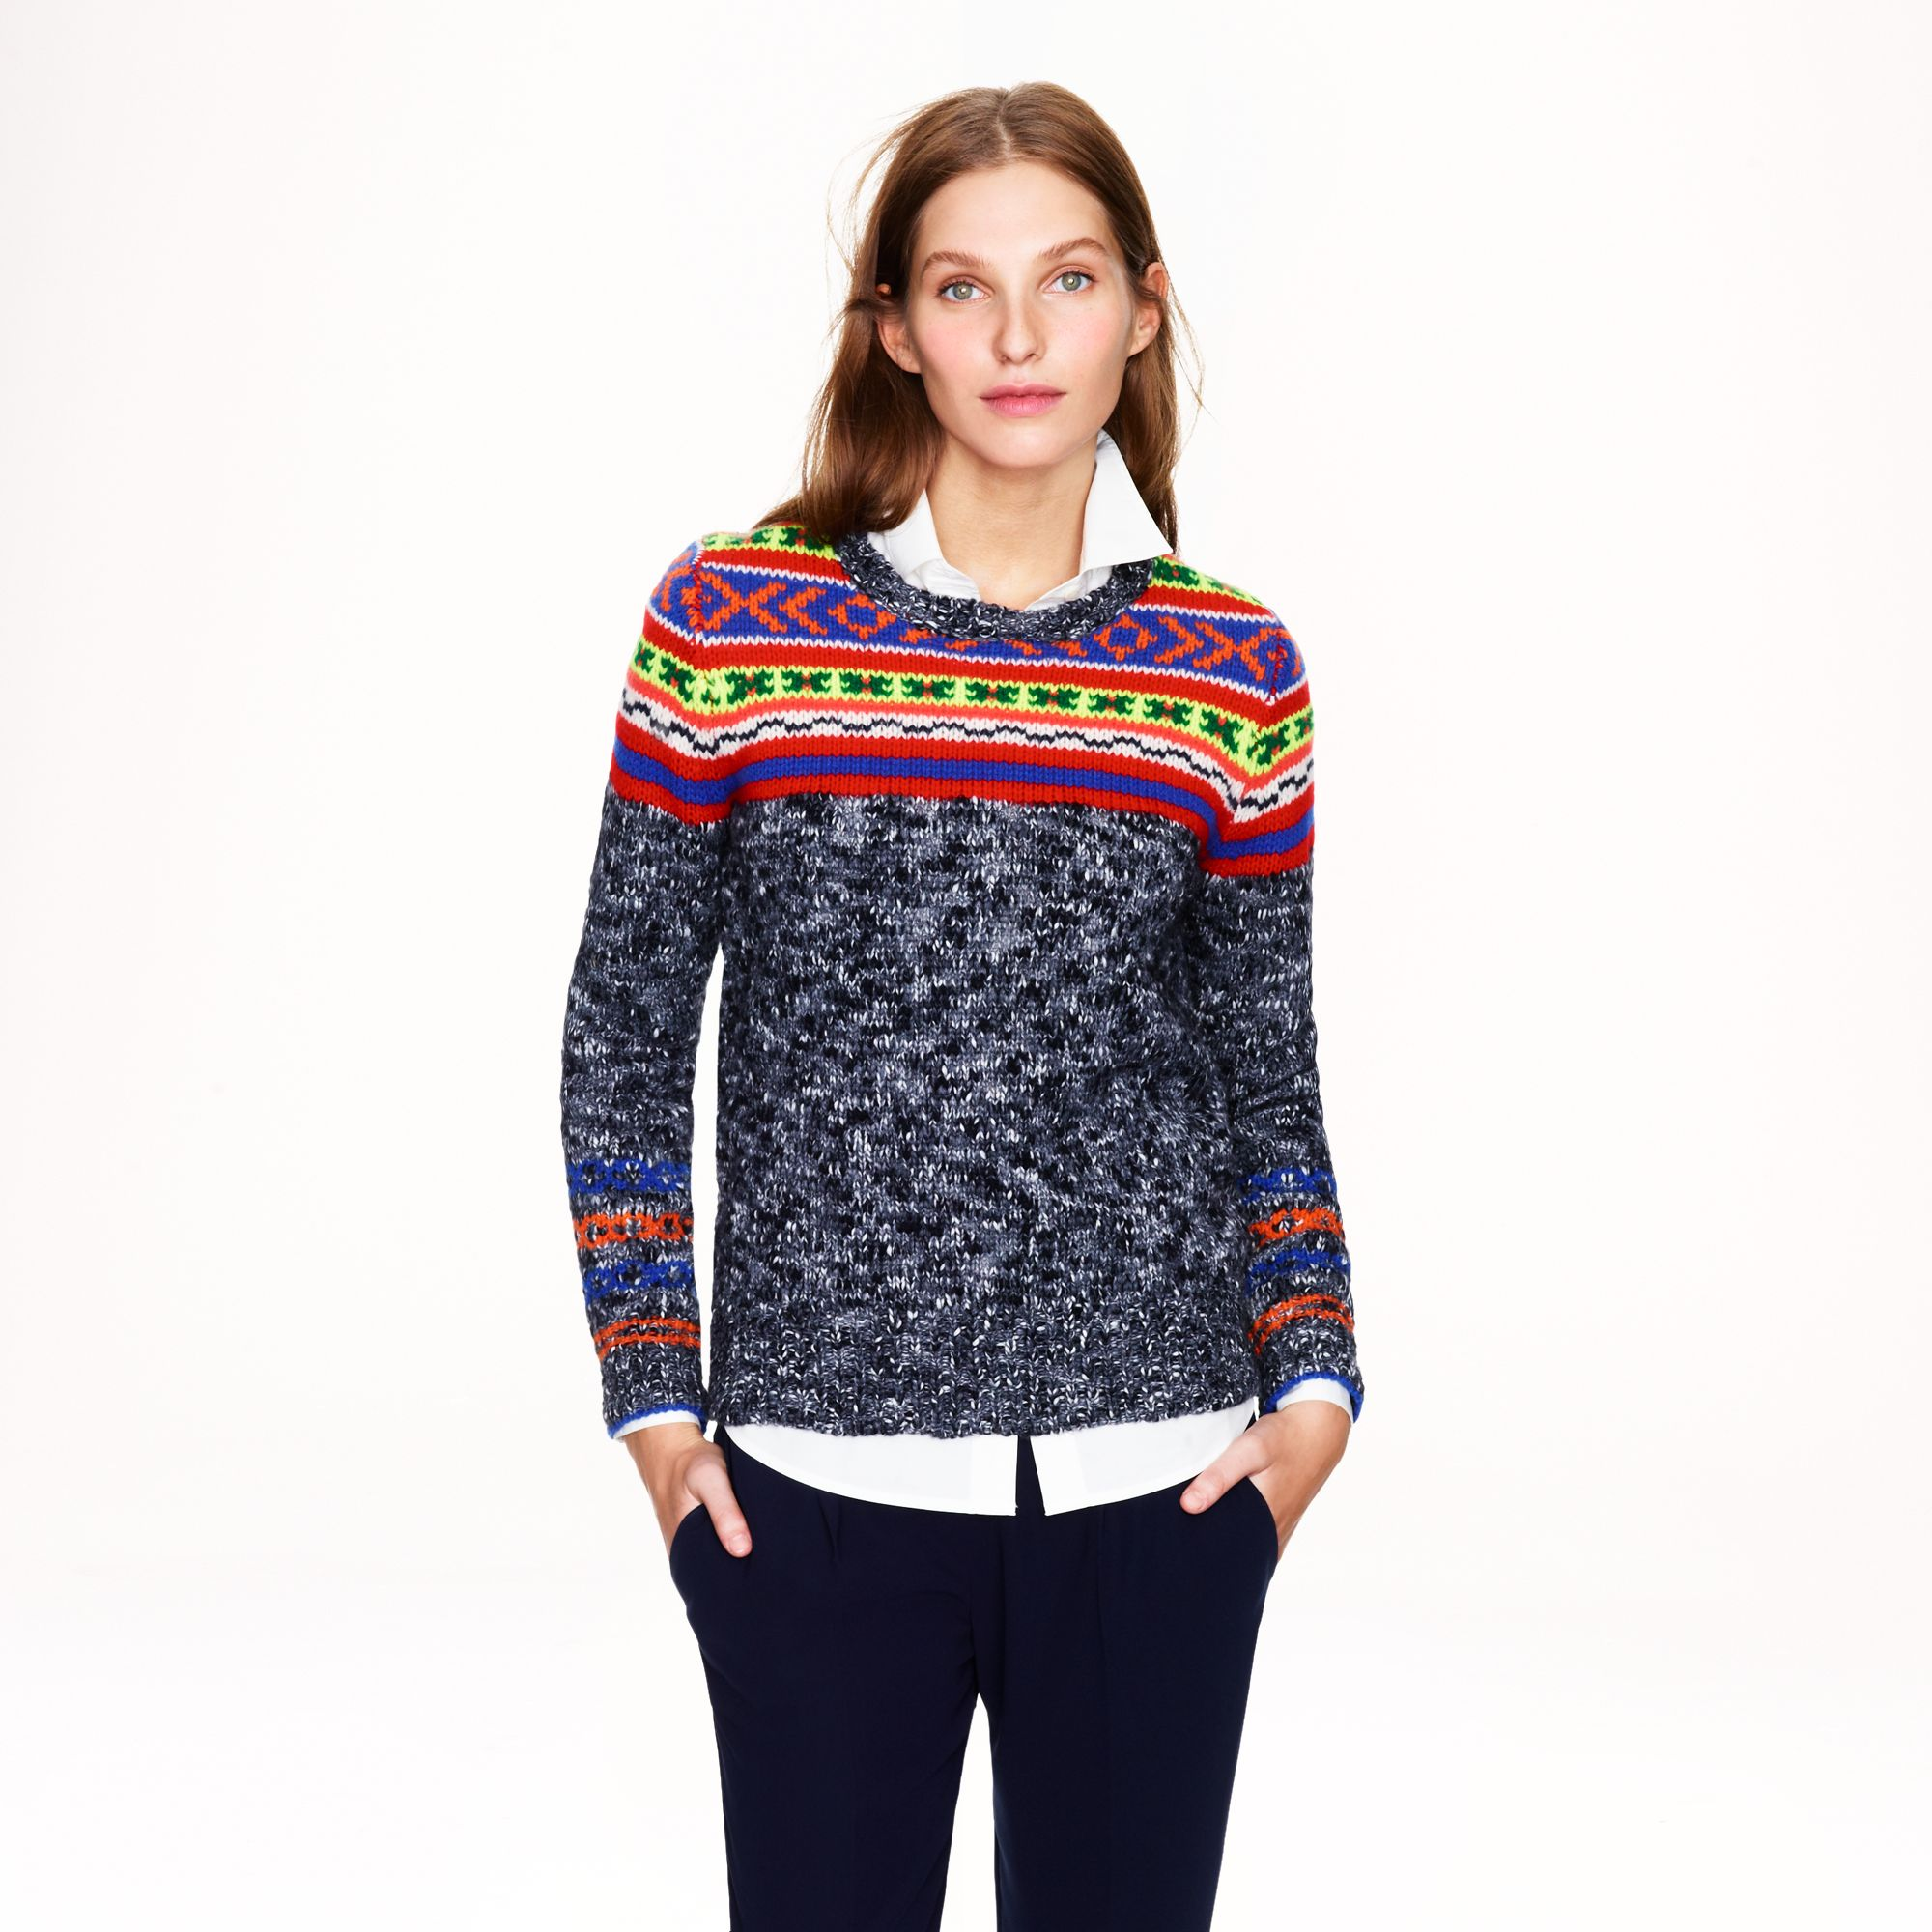 J.crew Marled Fair Isle Sweater in Gray | Lyst